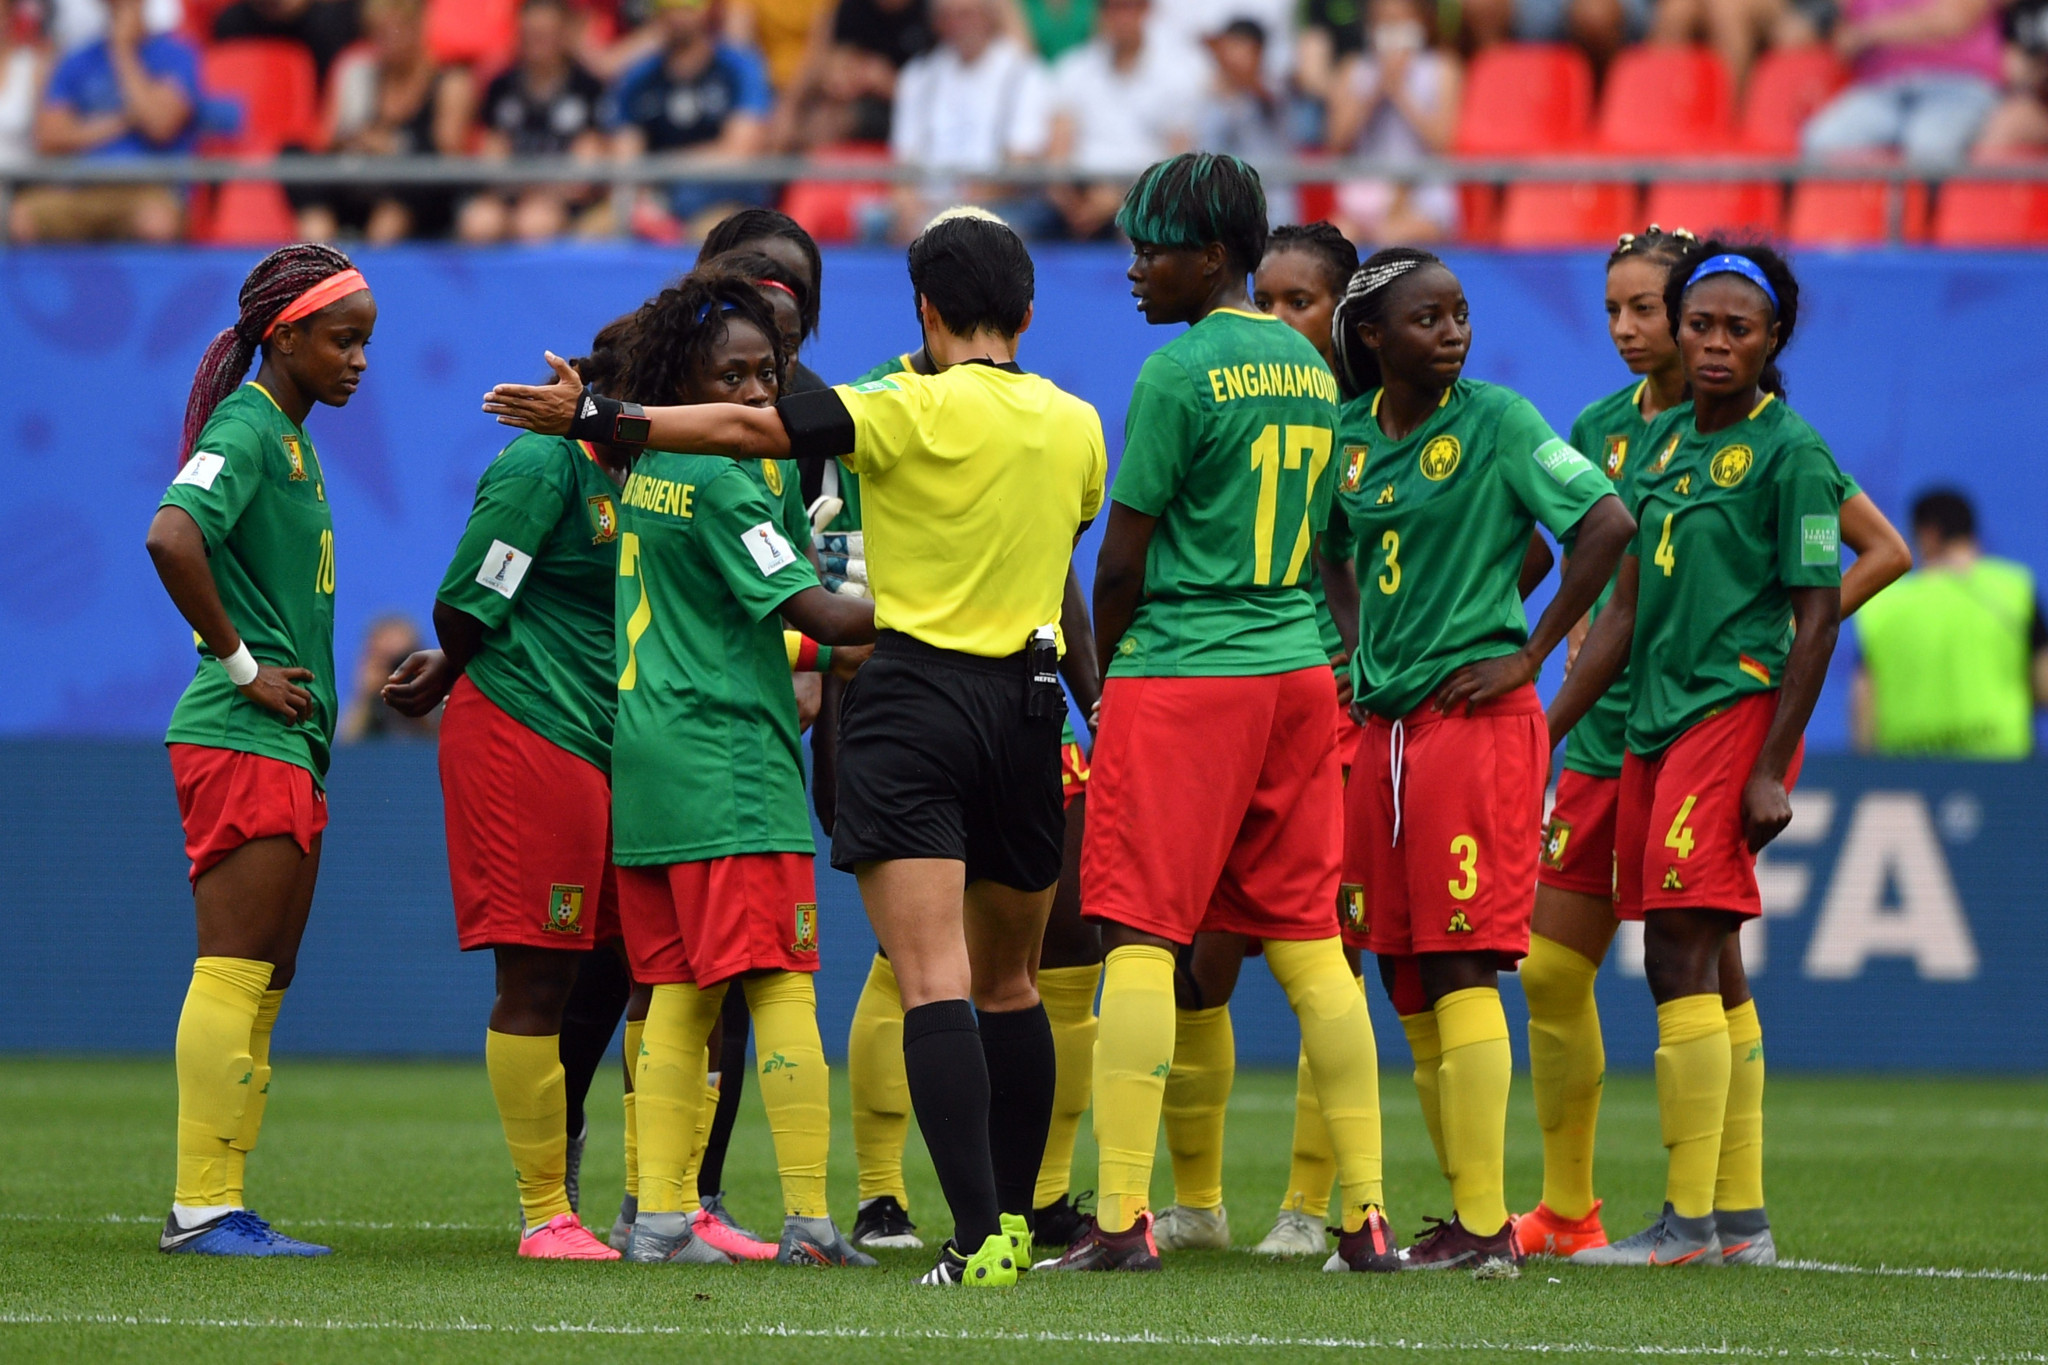 The Cameroon players were furious at the decision to award the goal and briefly appeared to refuse to restart play ©Getty Images